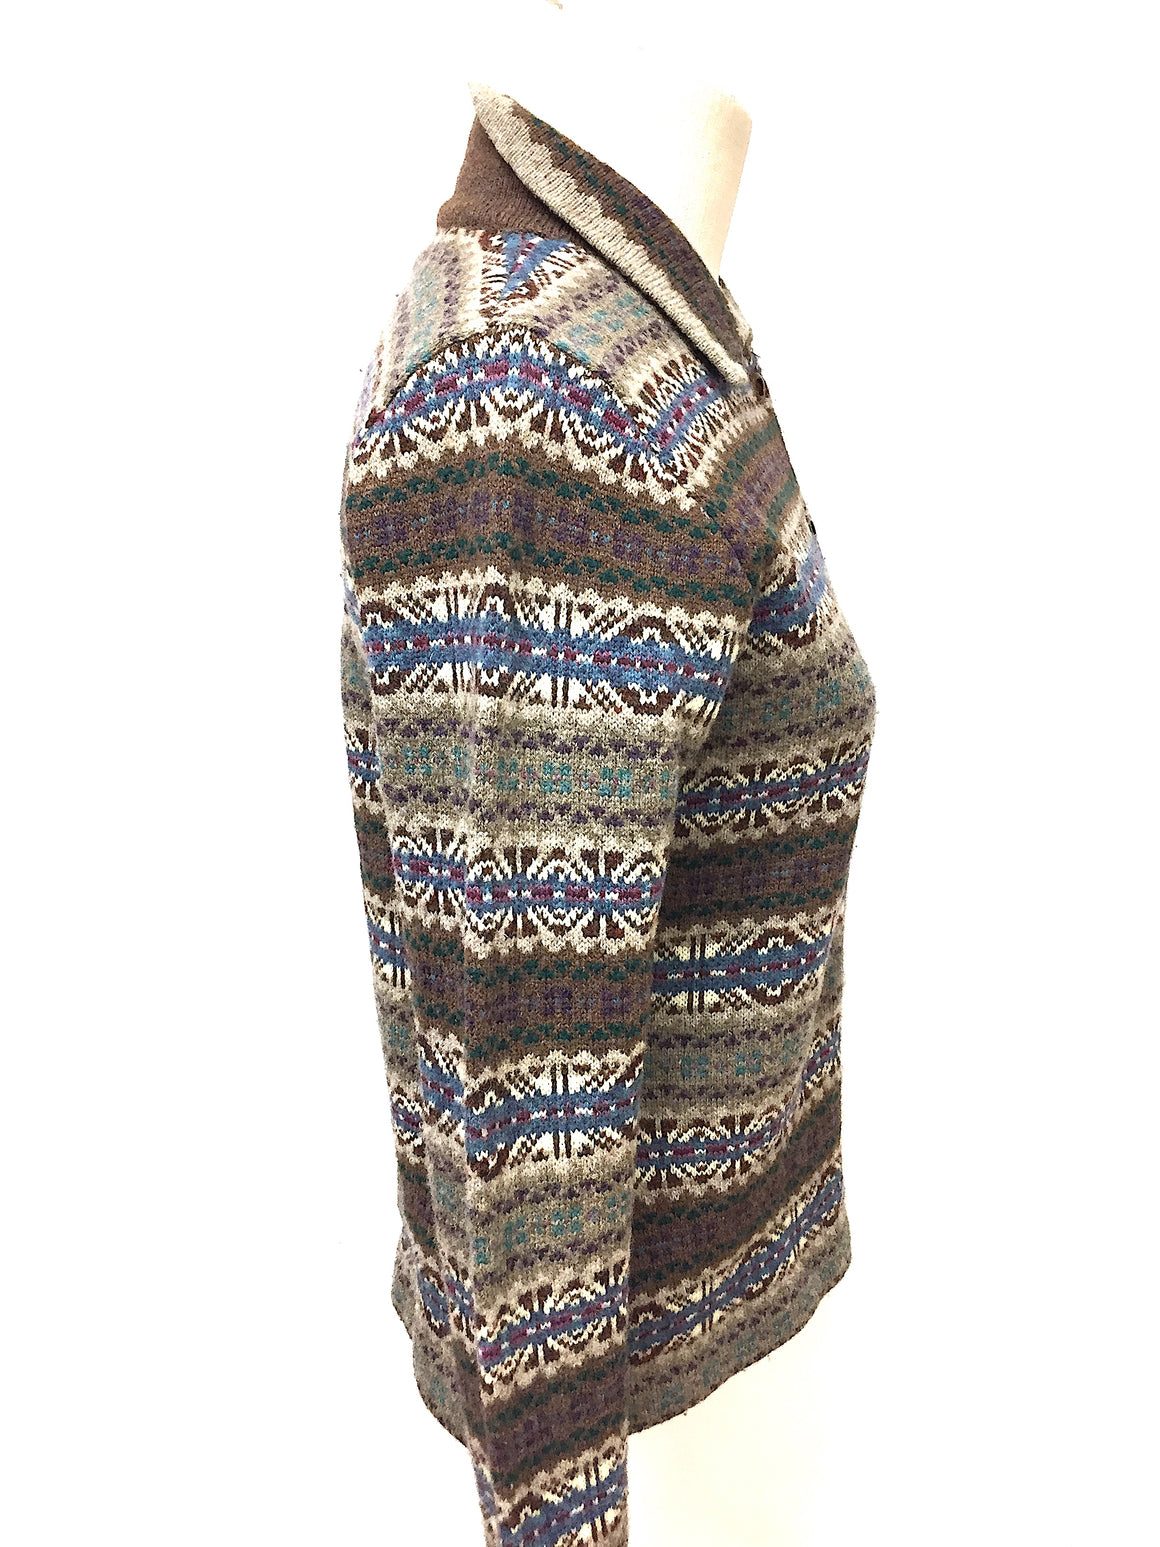 LAUREN RALPH LAUREN Vintage Taupe/Multicolor Fair Isle Patterned Lambswool Cardigan Sweater Size: Small